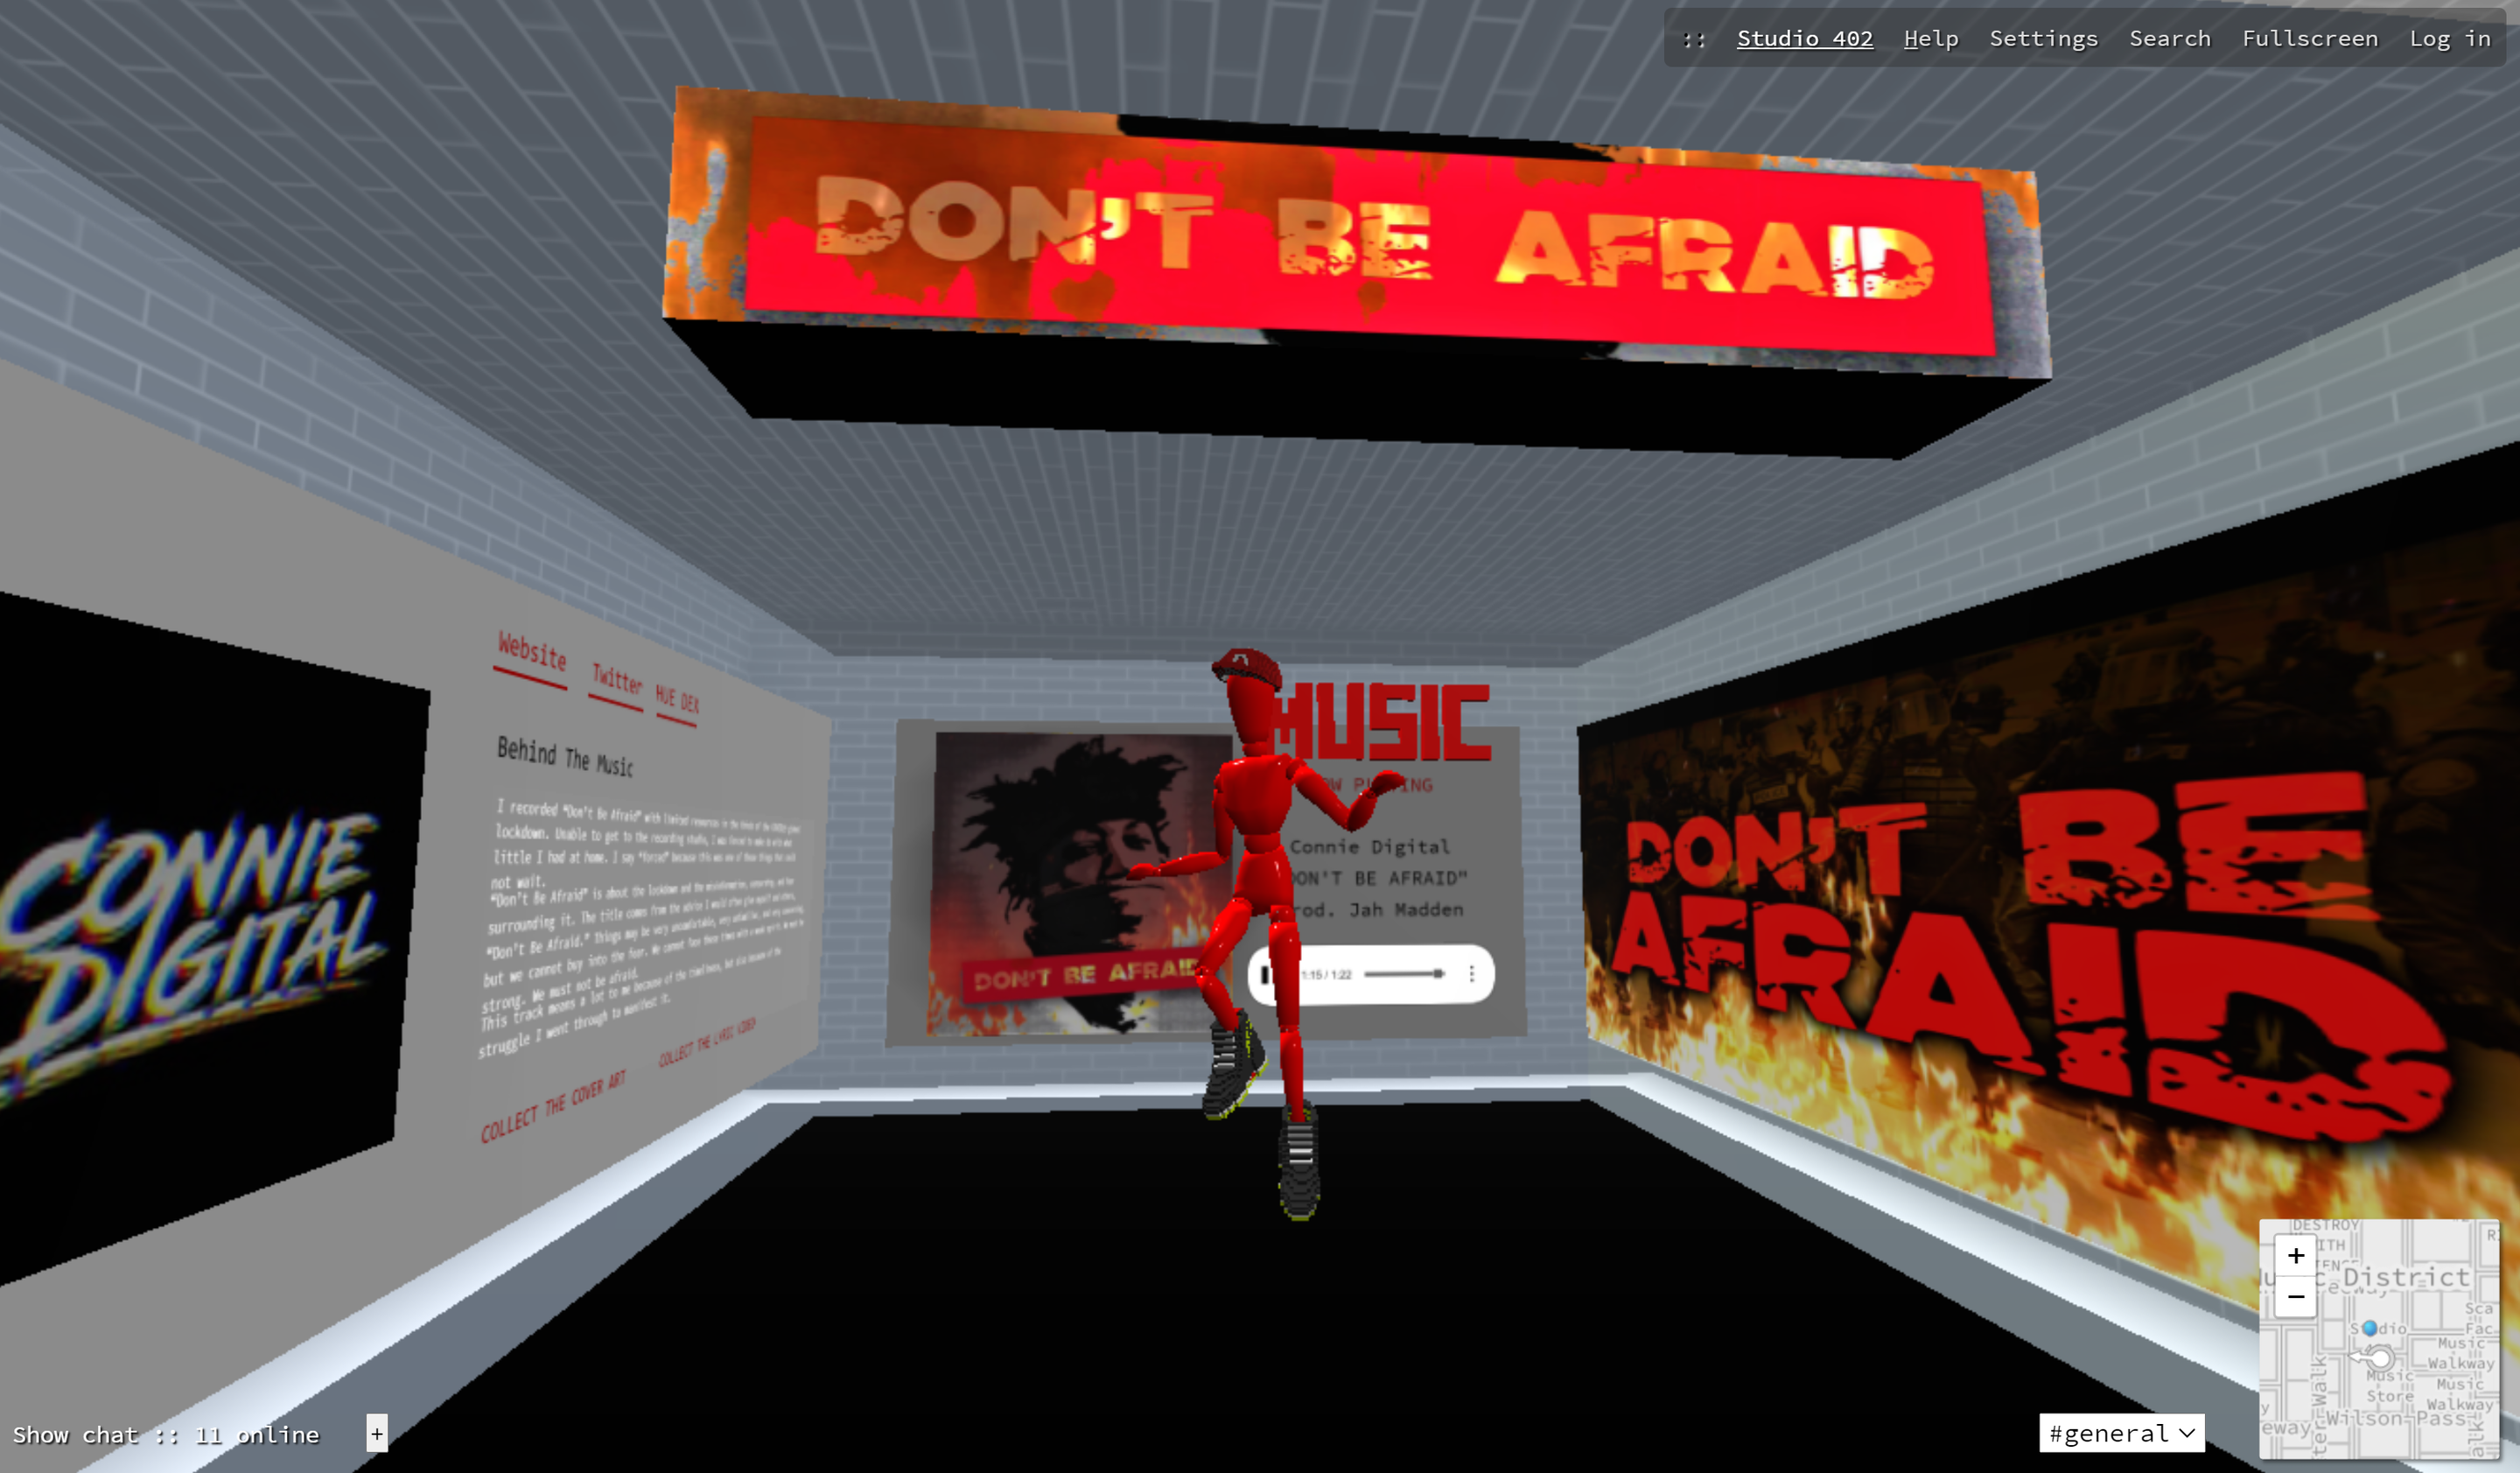 Connie Digital_Dont Be Afraid_NFT Collection 2020 Cryptovoxels